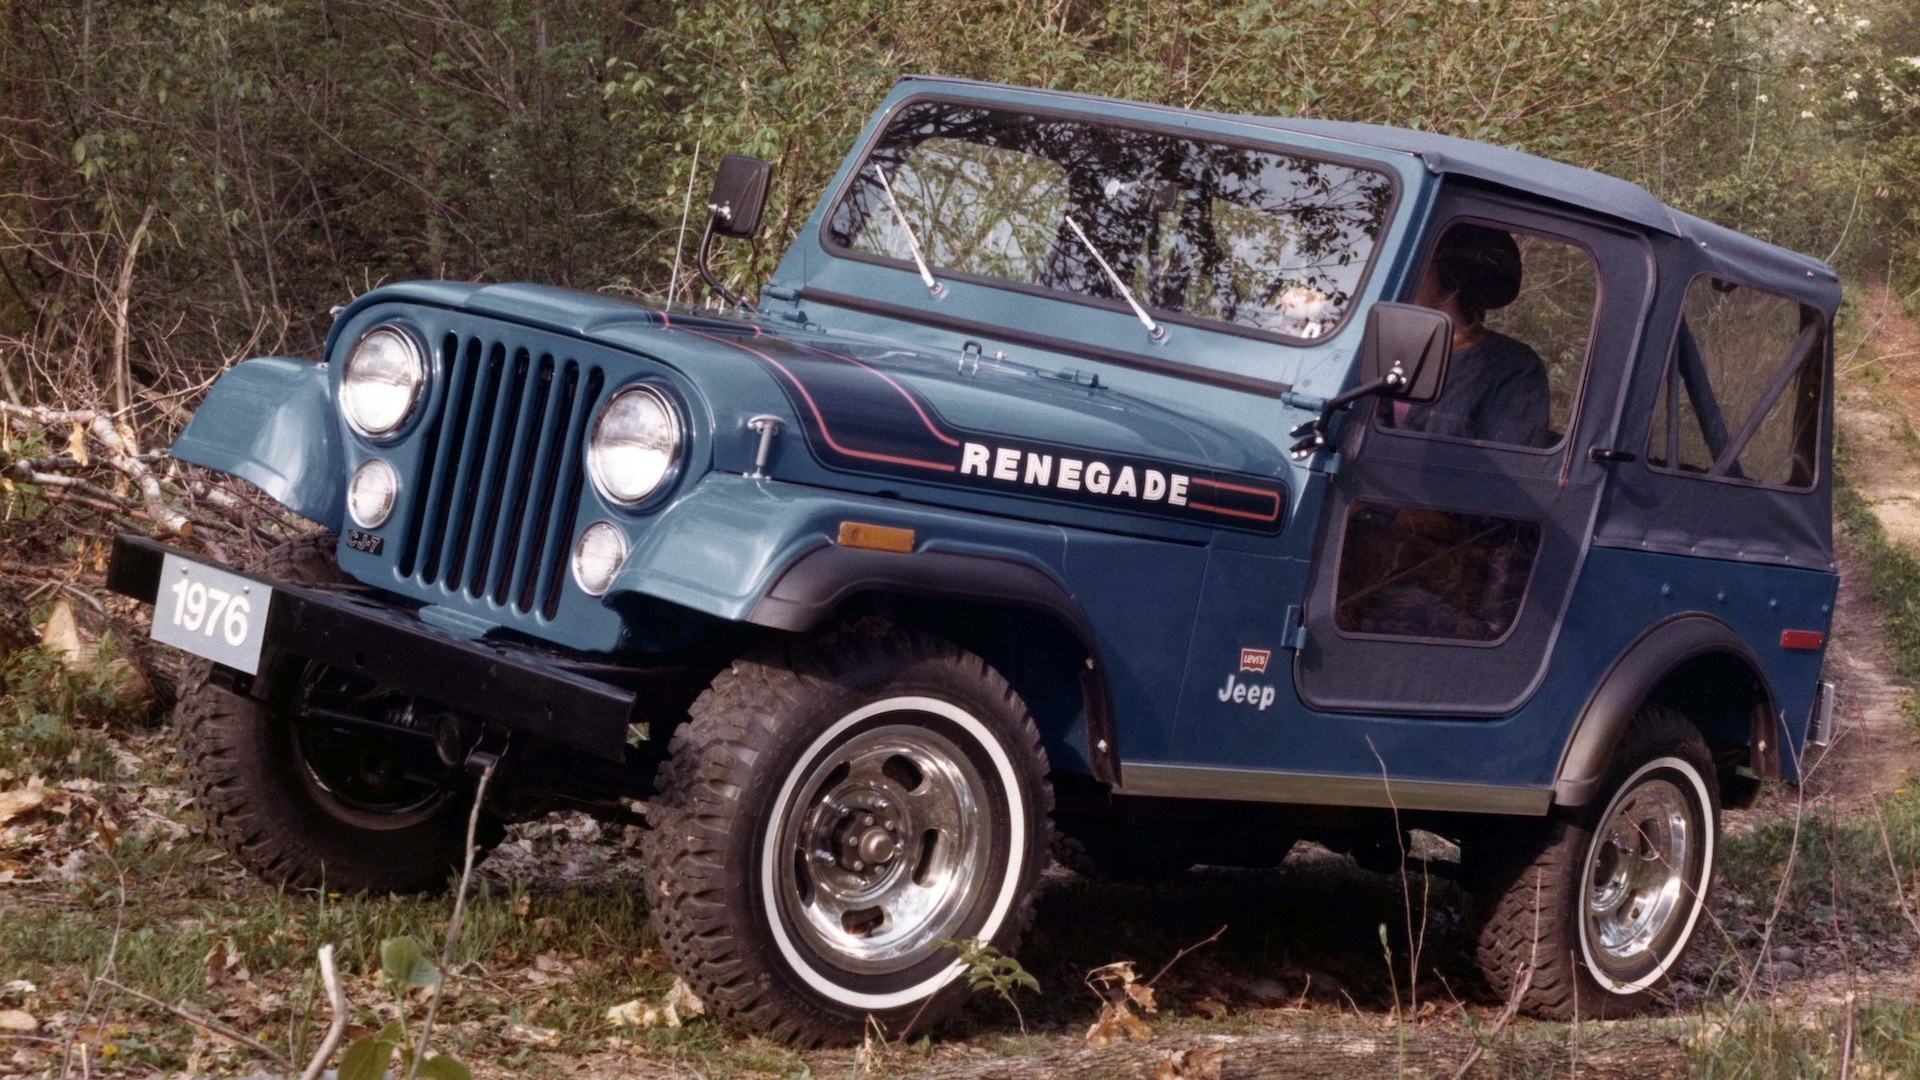 1976 Jeep CJ-7 Renegade Levi's Package